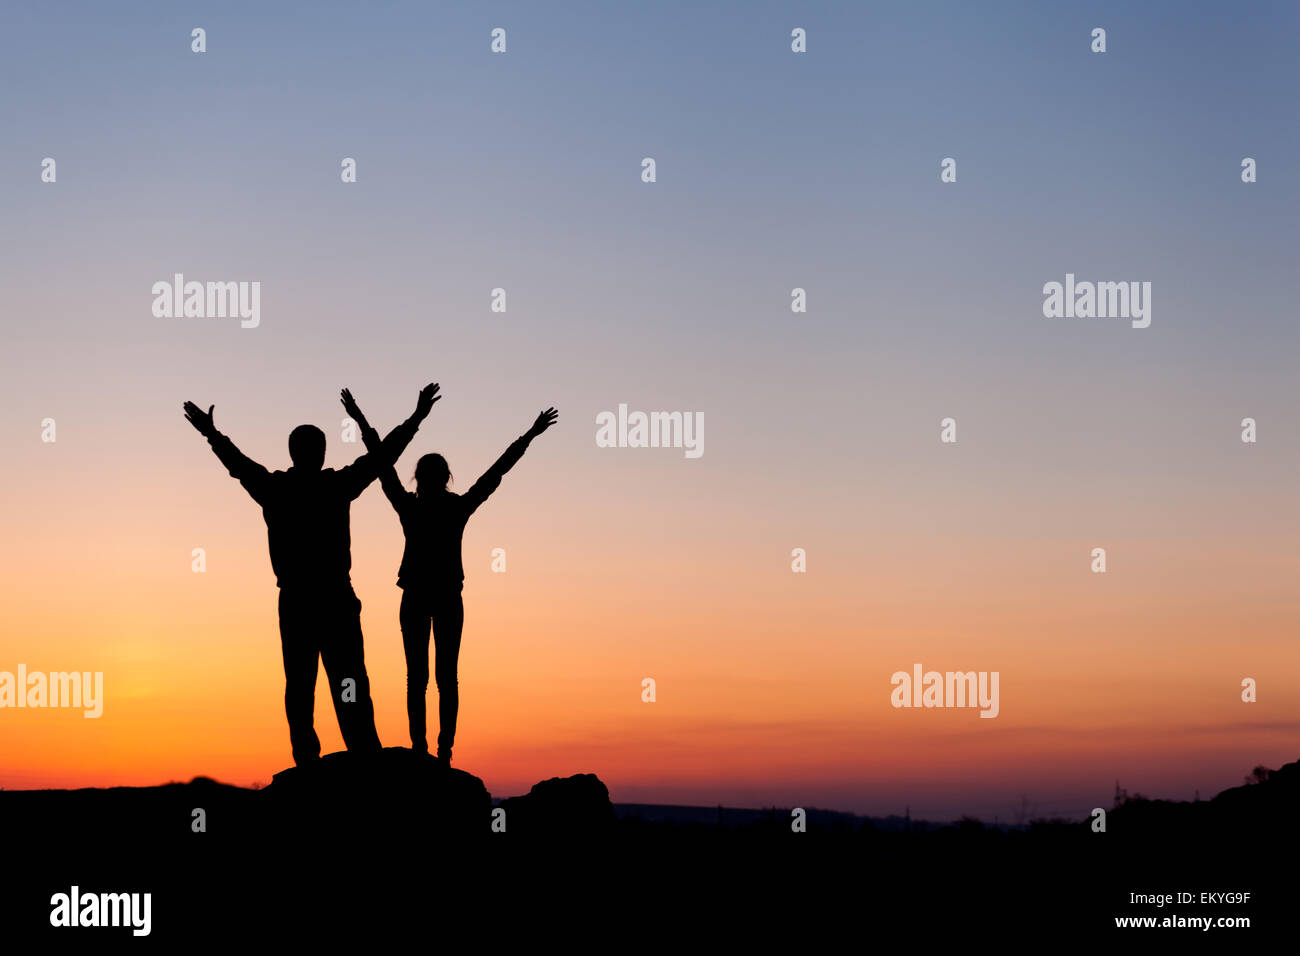 Silhouette of happiness family with arms raised up against beautiful colorful sky. Summer Sunset. Landscape - Stock Image